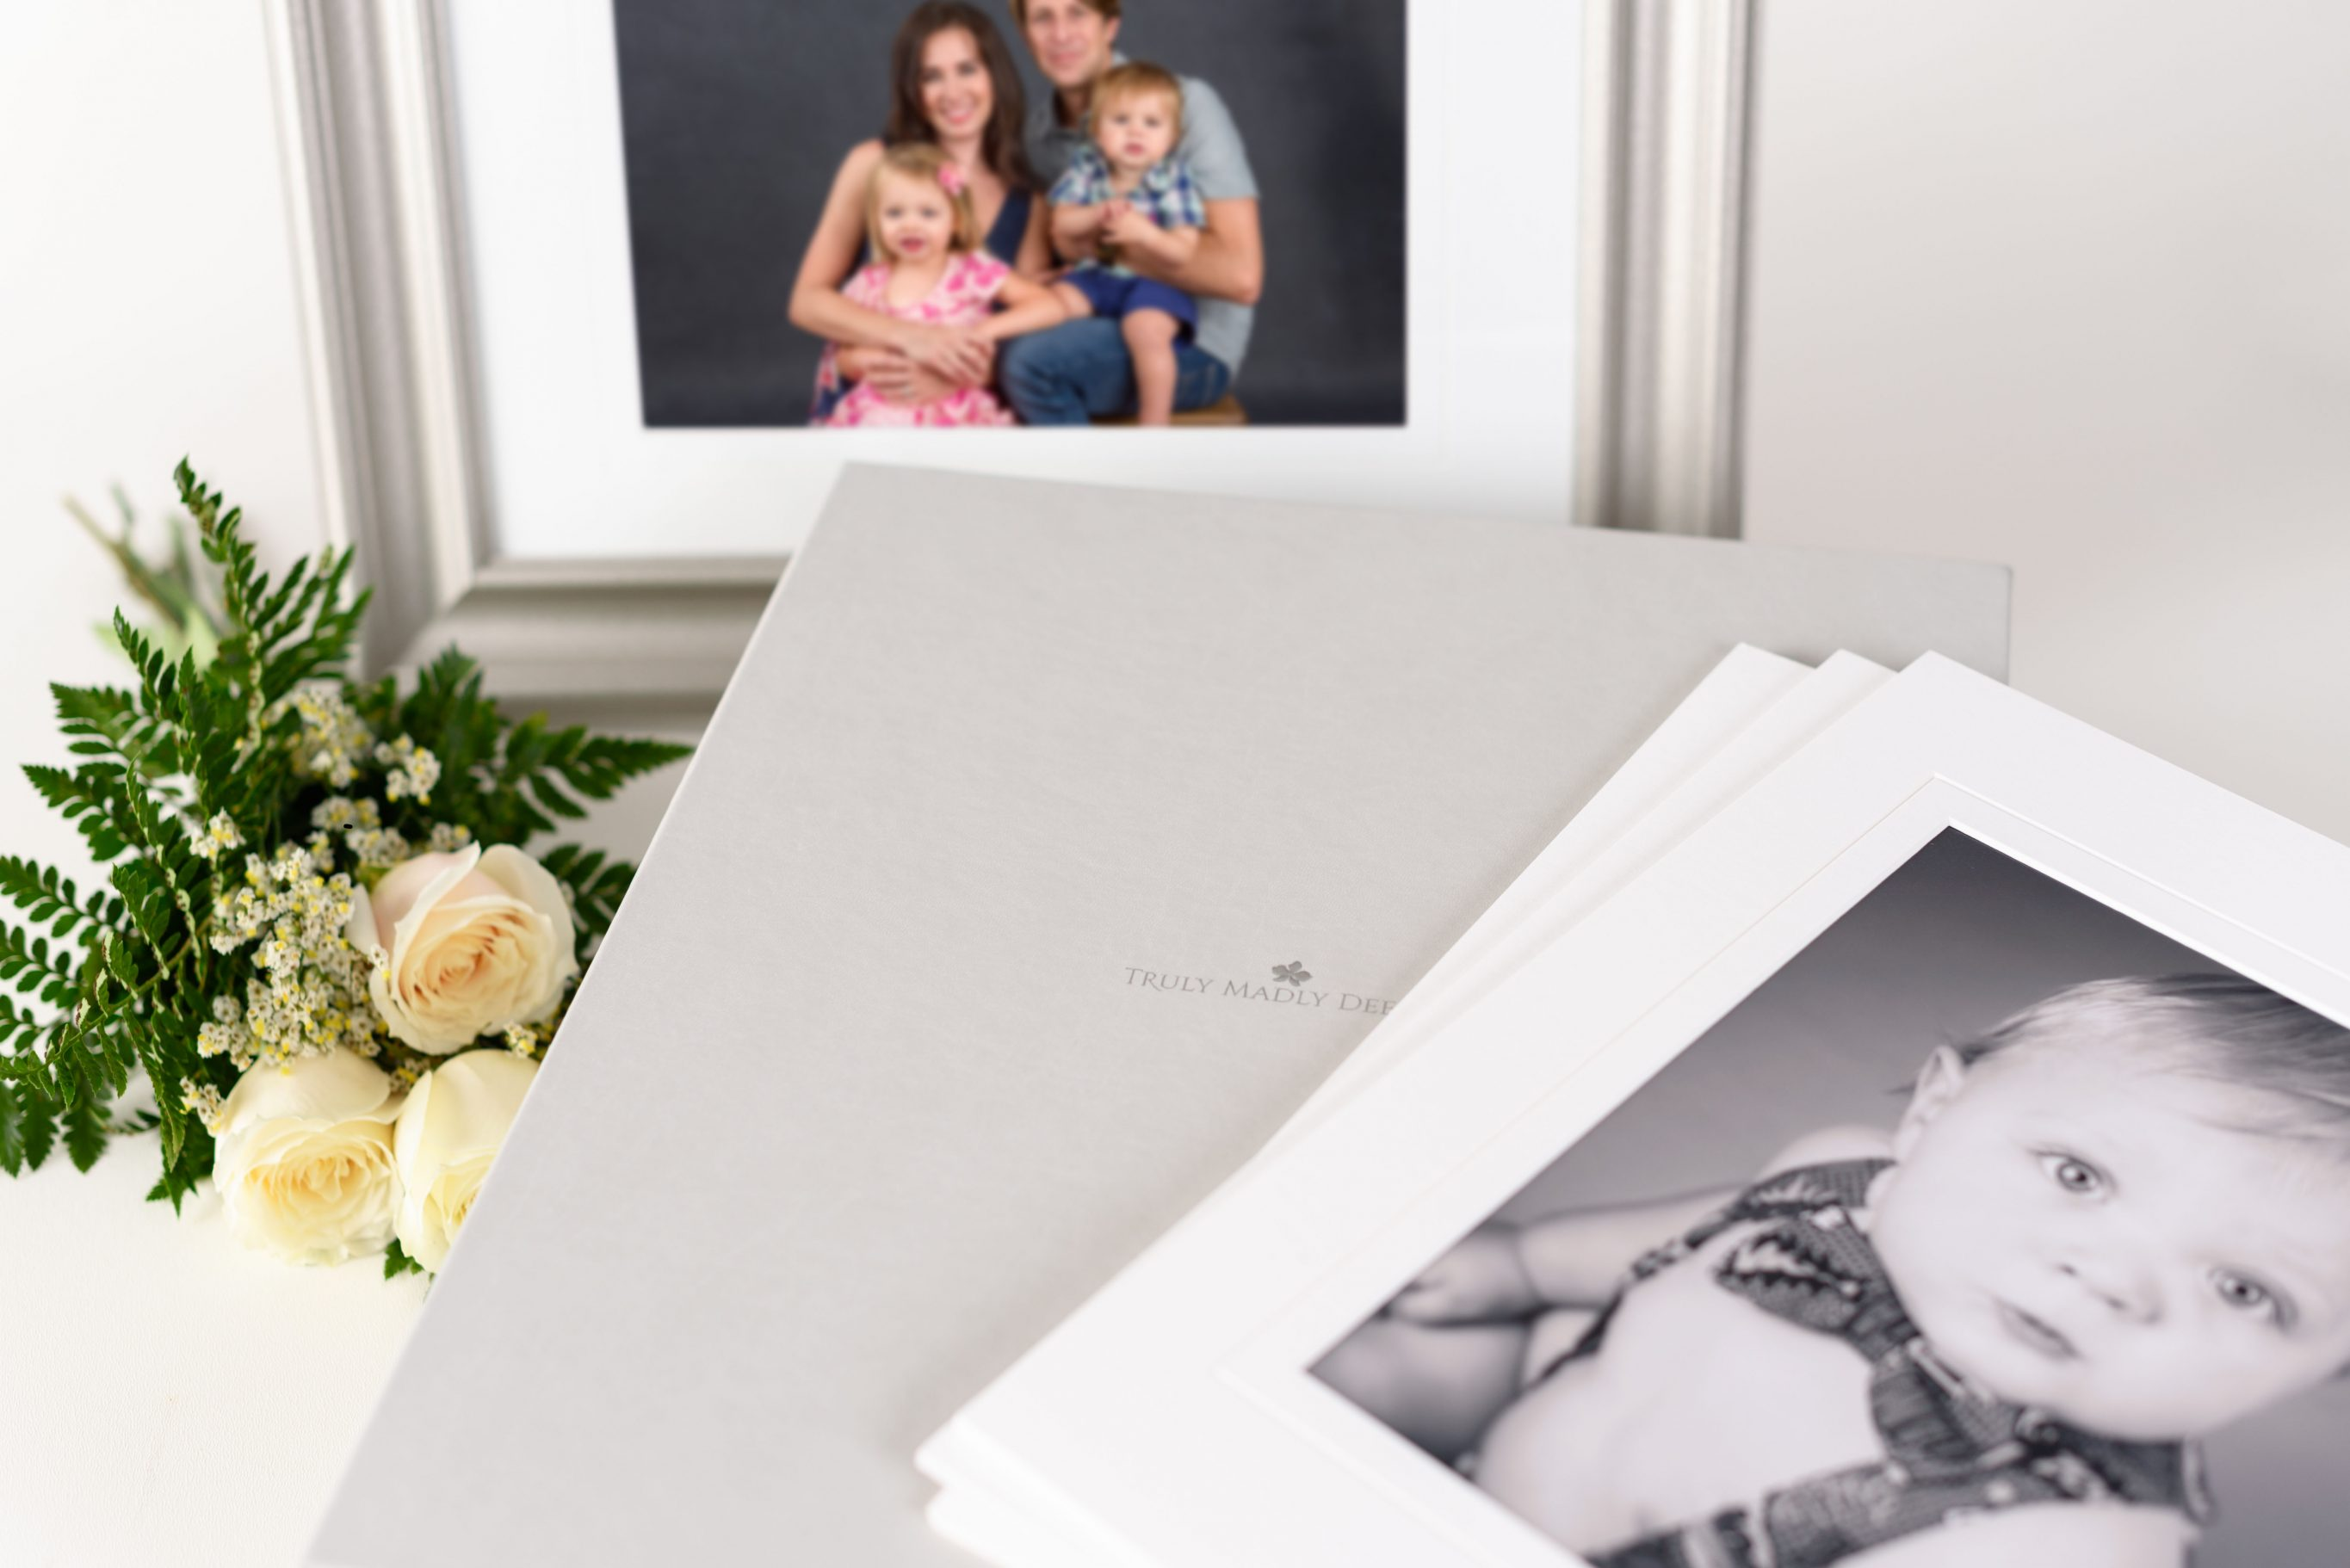 Print and product photography packages by Truly Madly Deeply - portrait, maternity and newborn photography in Savannah, GA https://tmd.photo